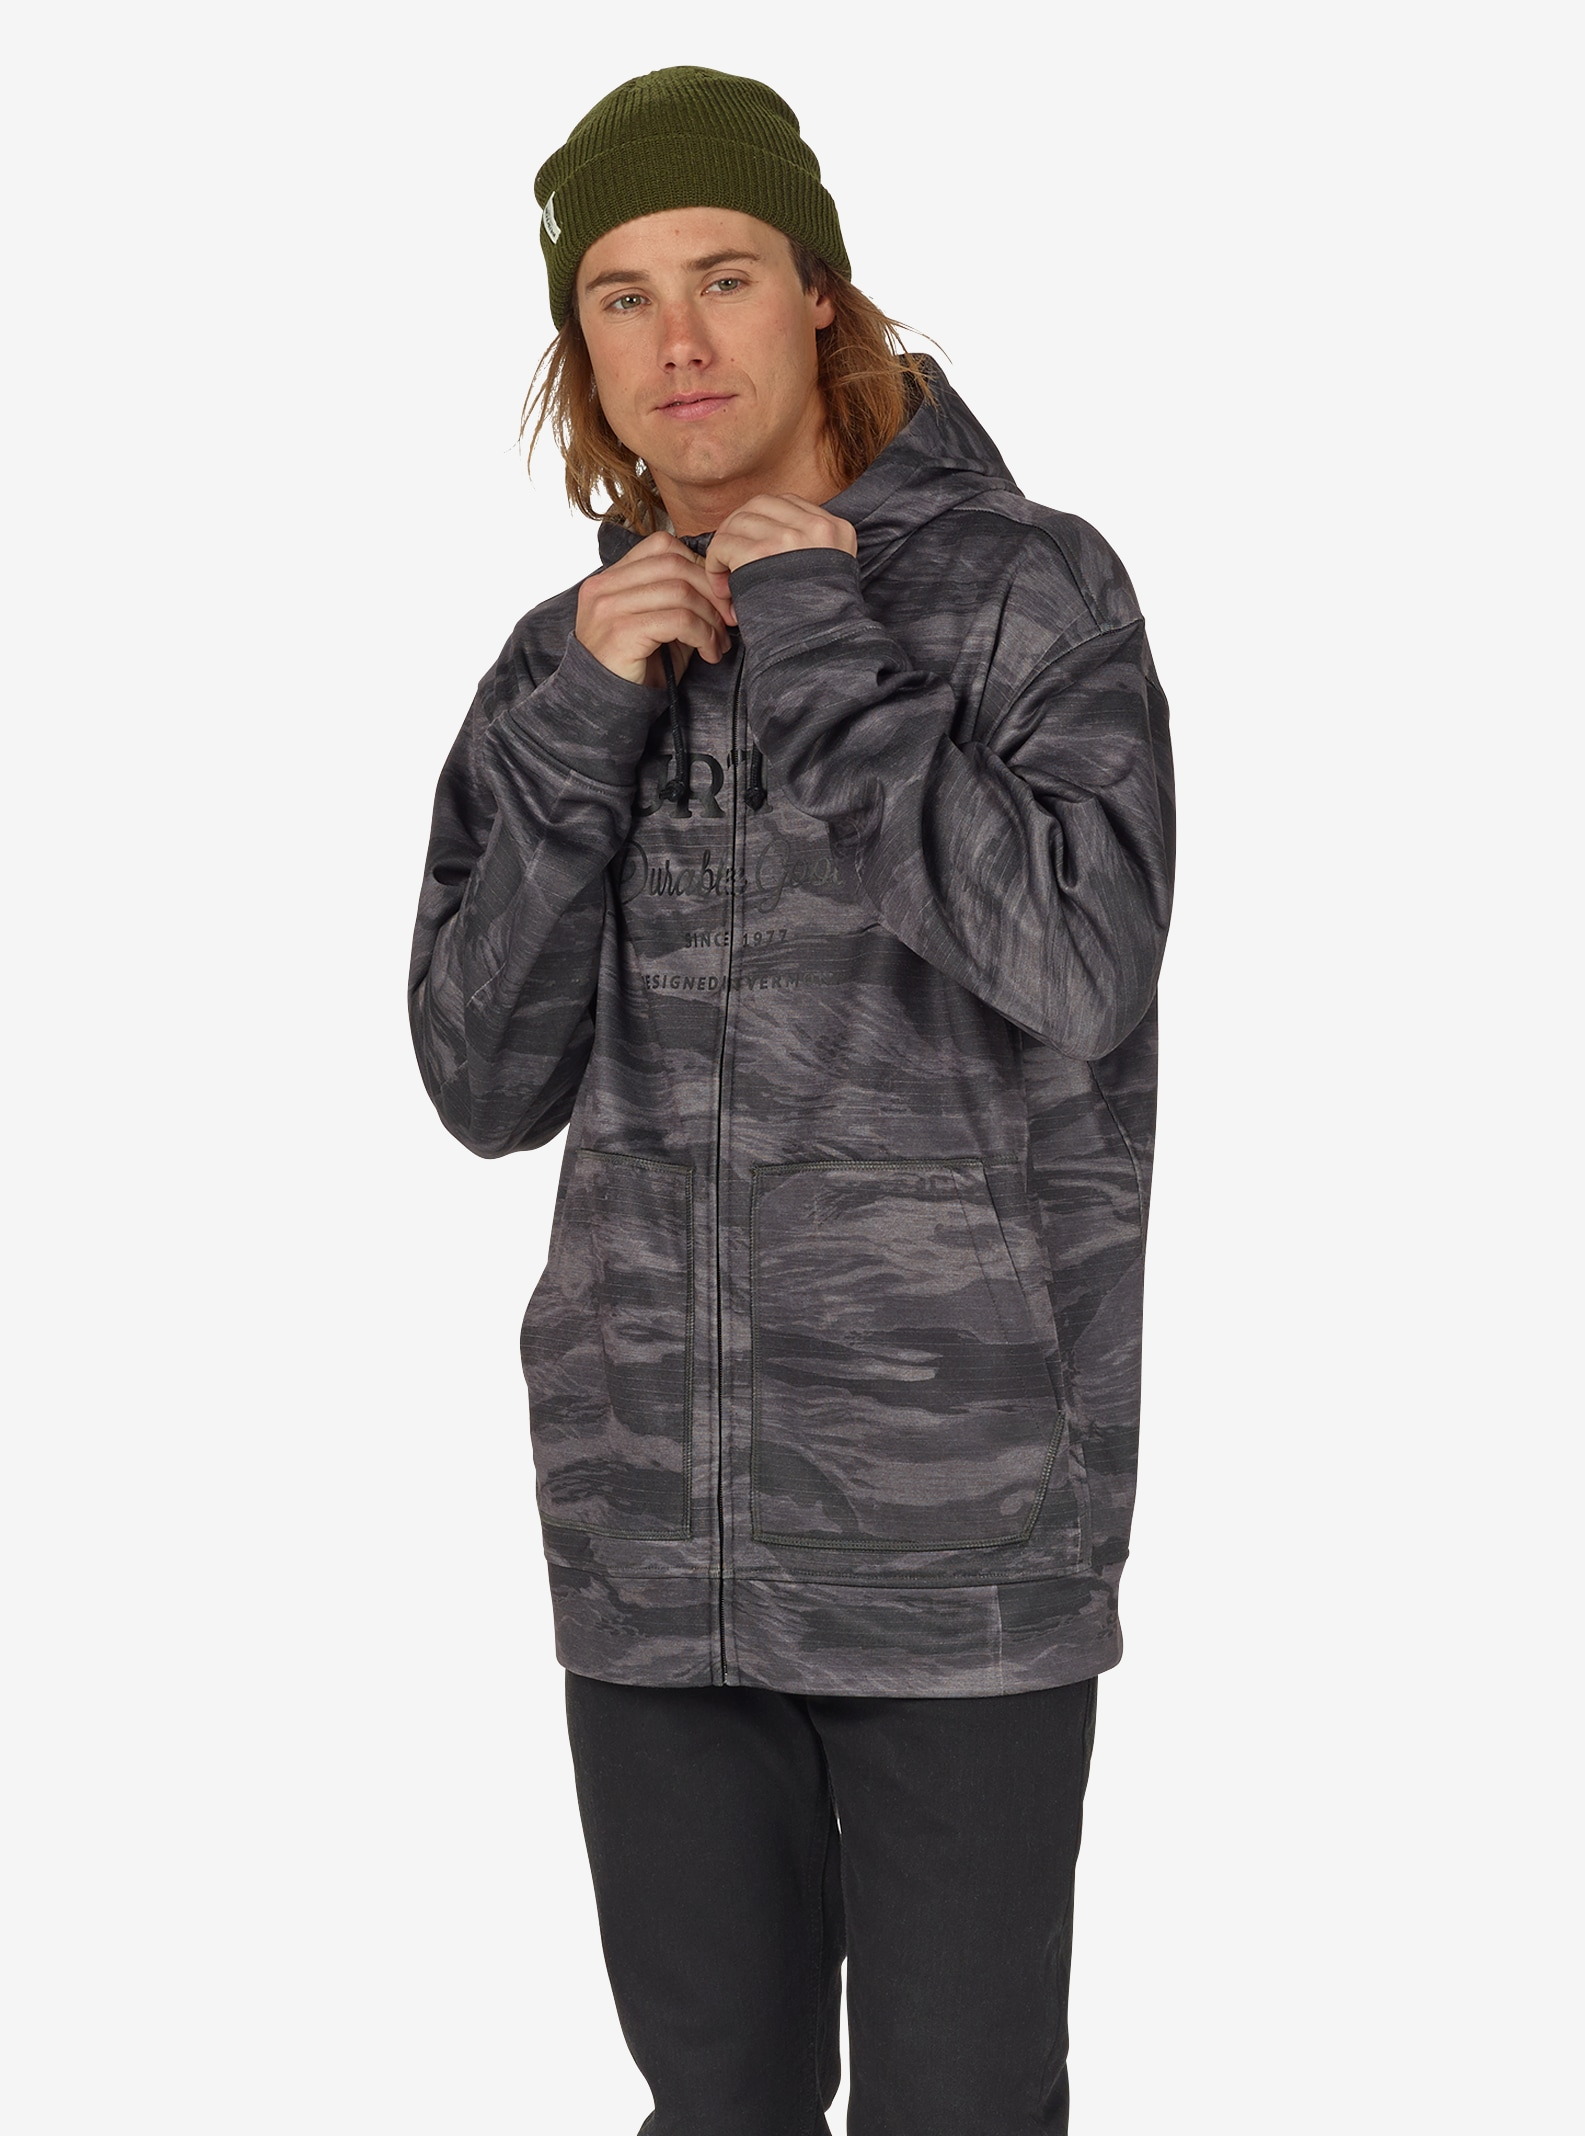 Men's Burton Oak Full-Zip Hoodie shown in Faded Worn Tiger